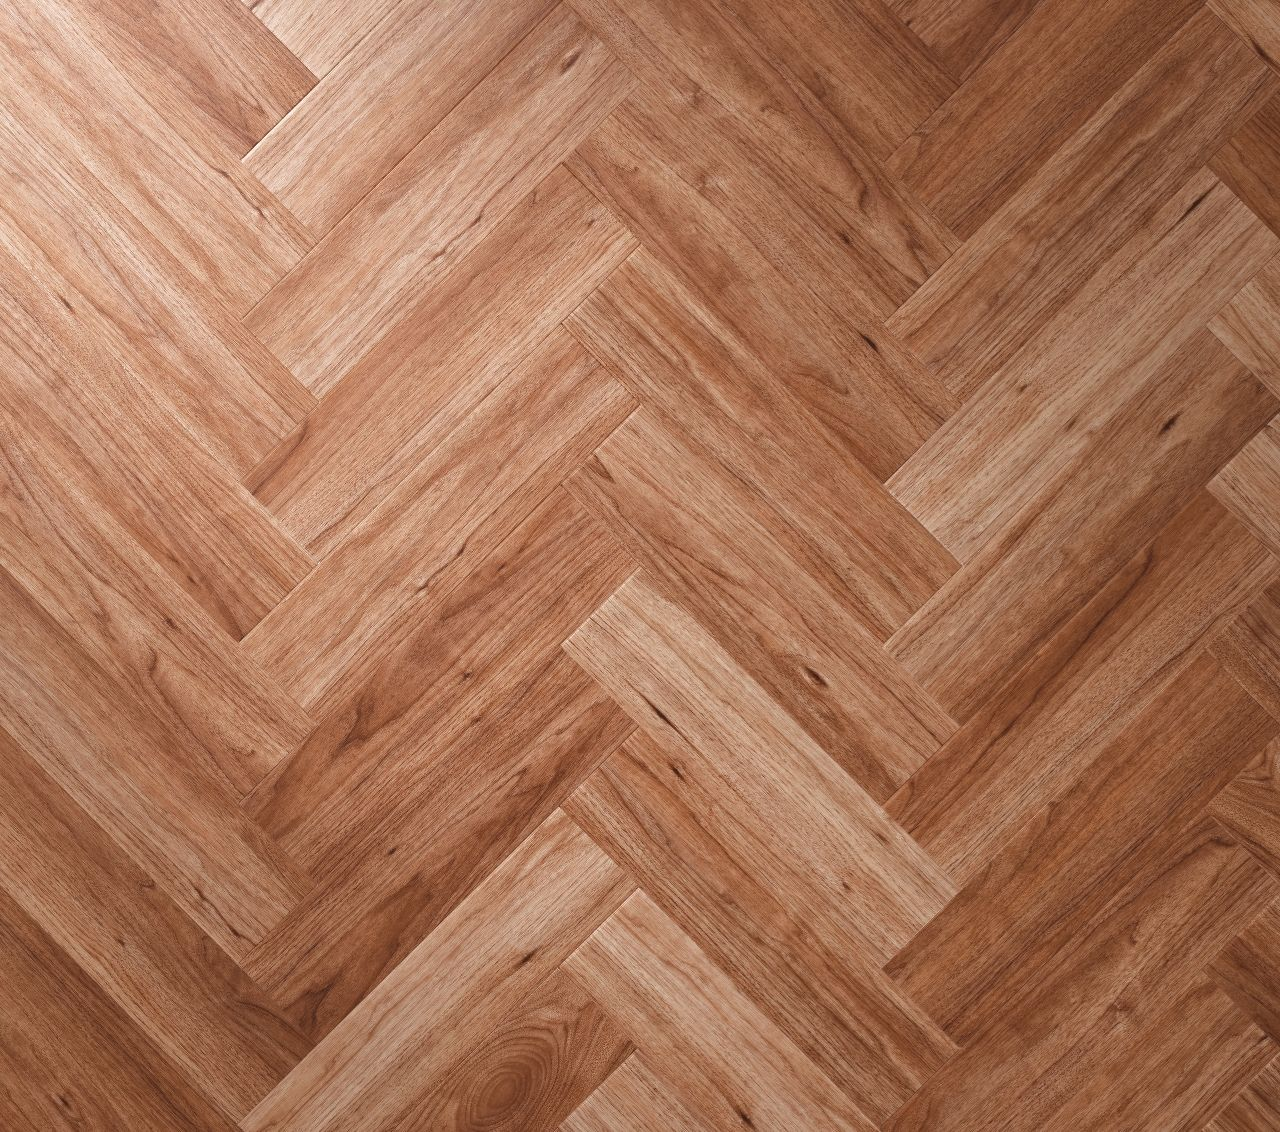 Herringbone tile pattern 6x24 herringbone tile layout design herringbone tile pattern 6x24 herringbone tile layout design as flooring decorating design dailygadgetfo Images